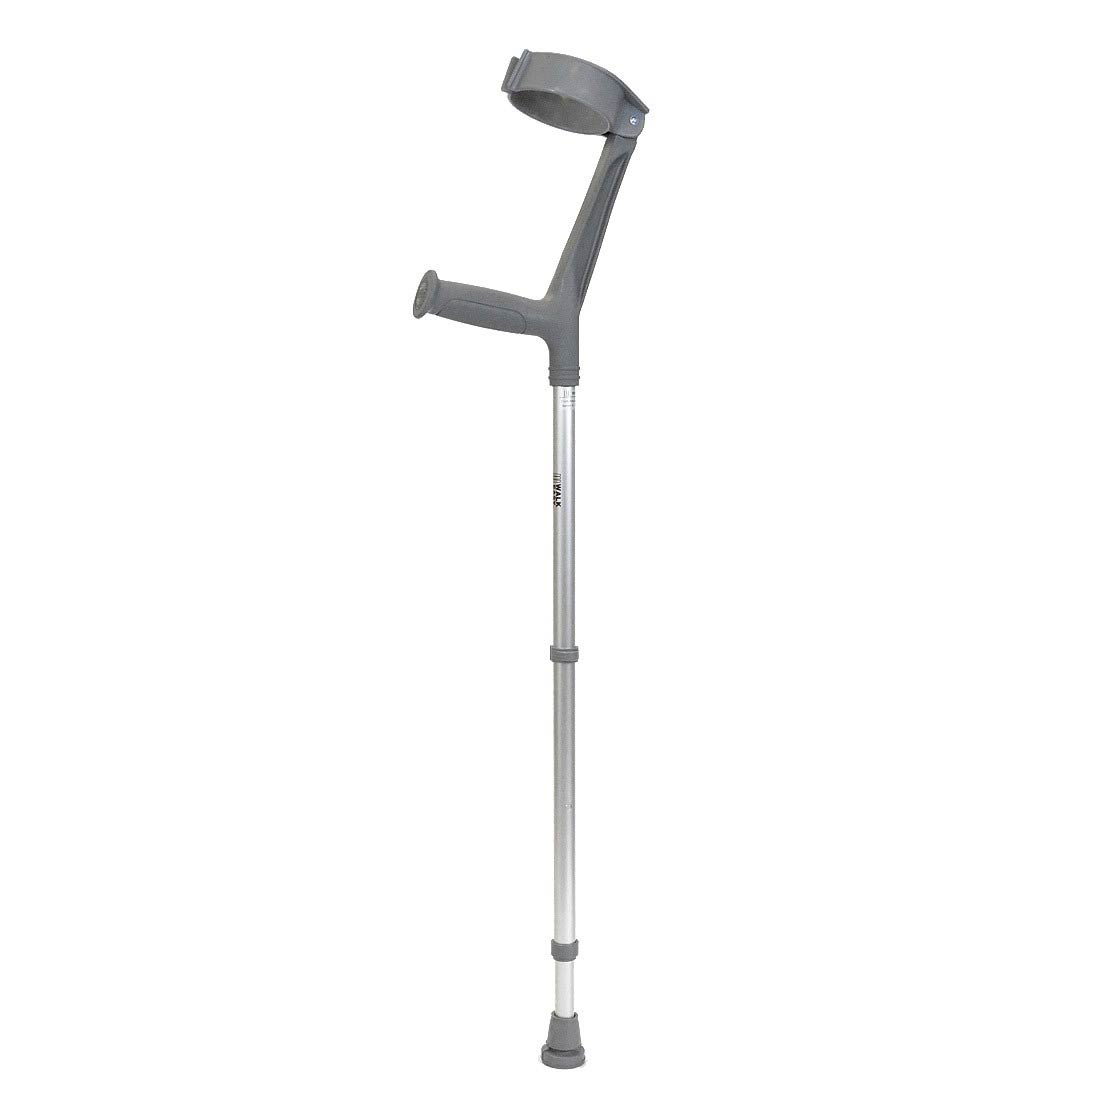 Walk Easy adult forearm brushed aluminum articulated crutches with 4